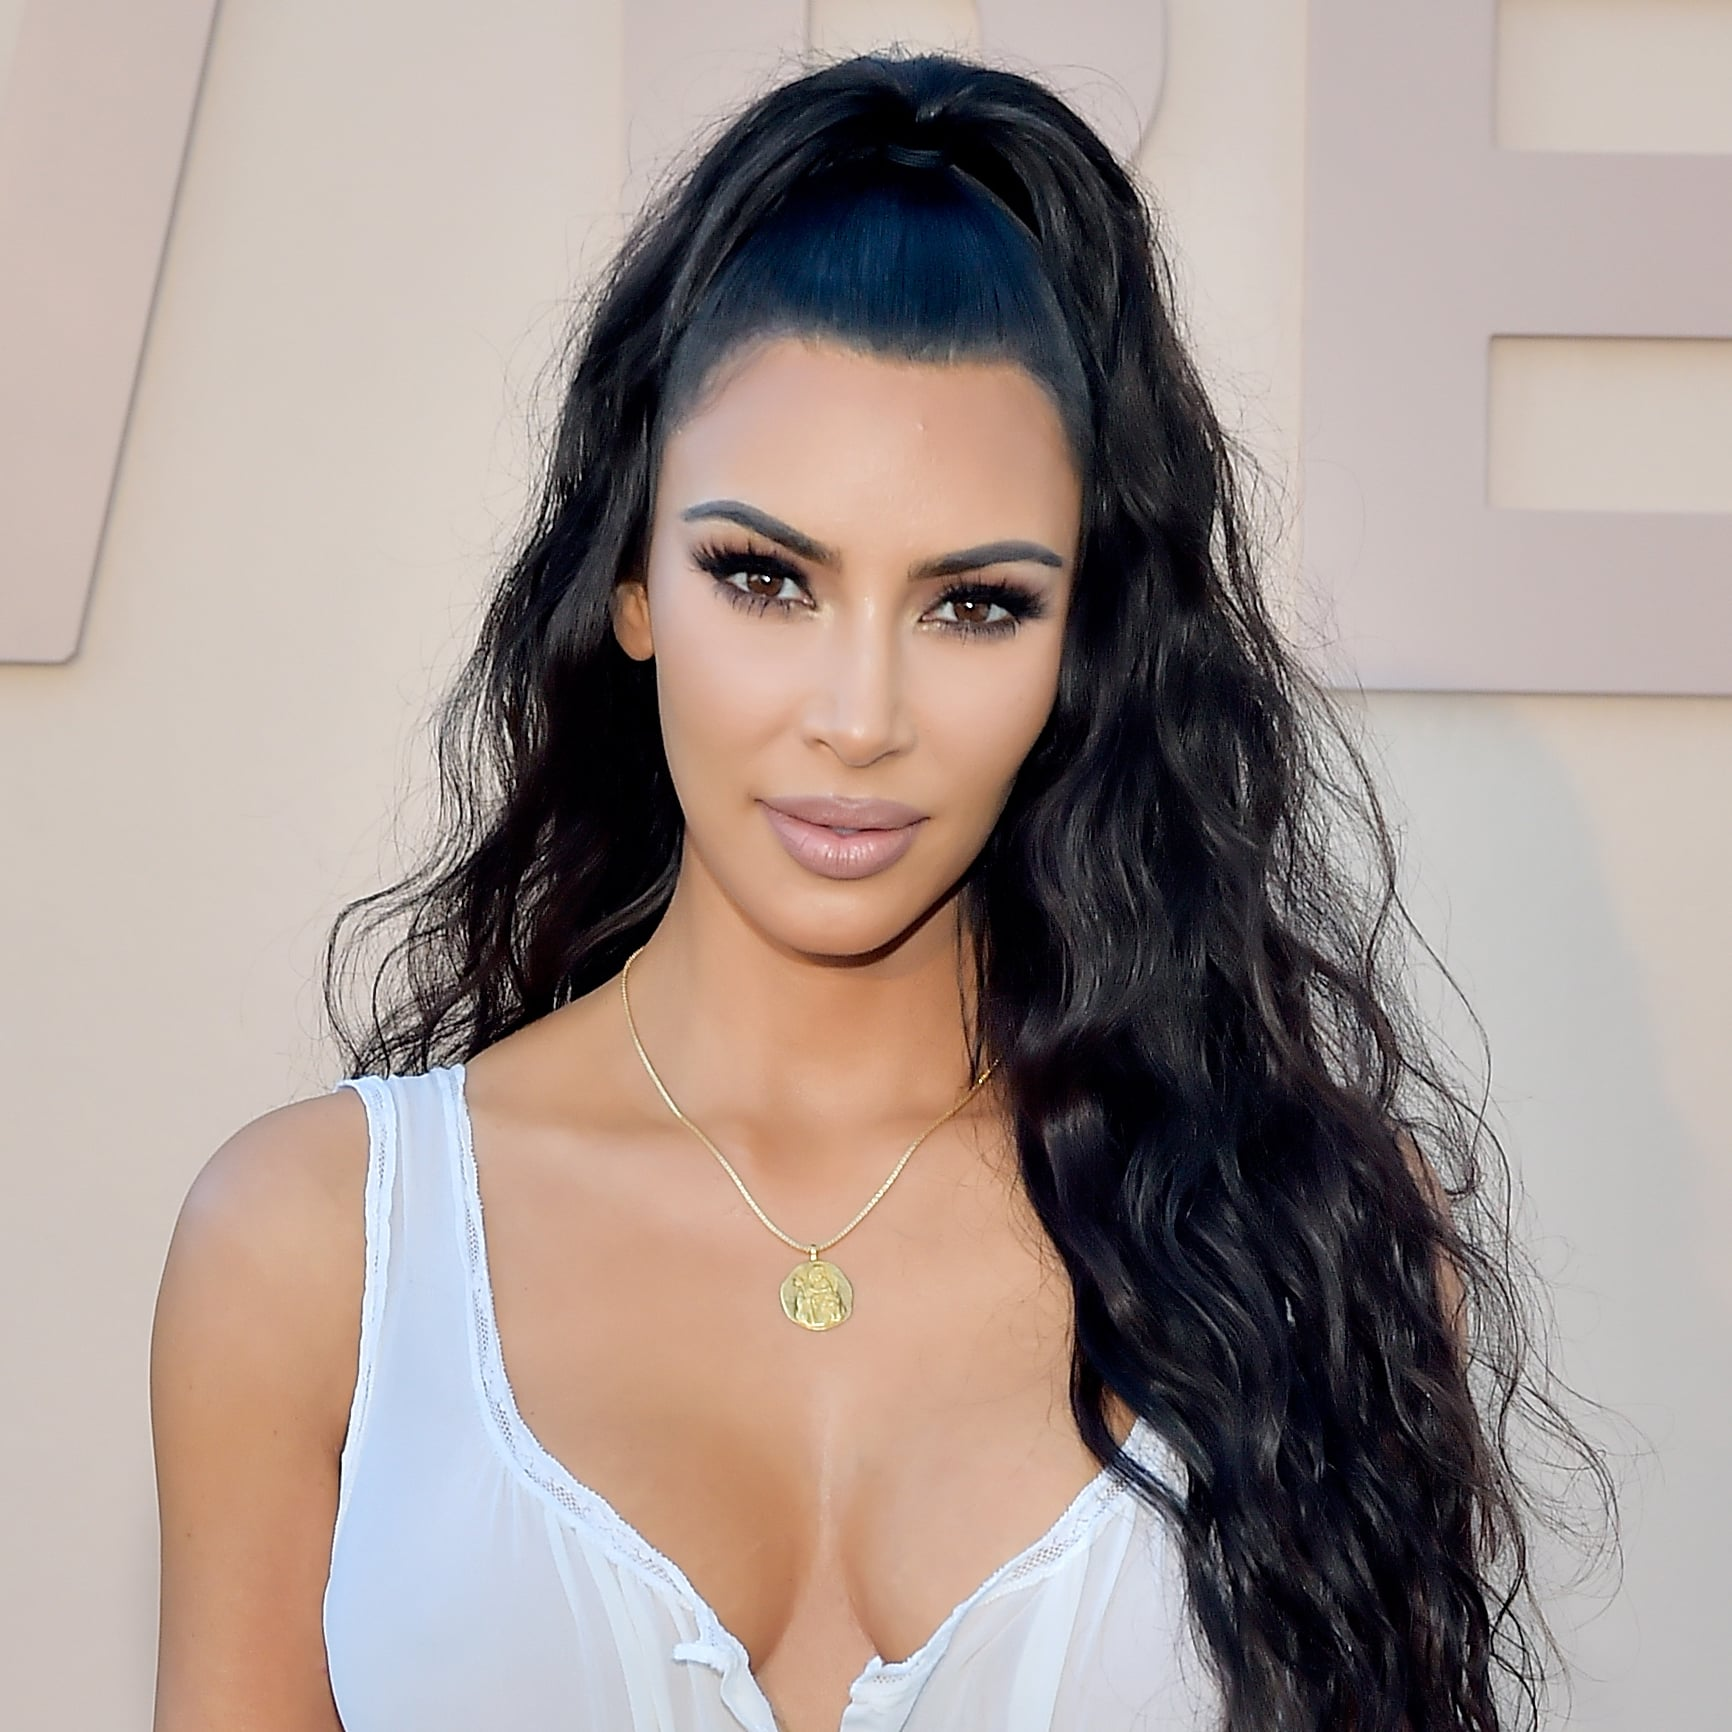 Kim Kardashian says people warned her not to work with Donald Trump